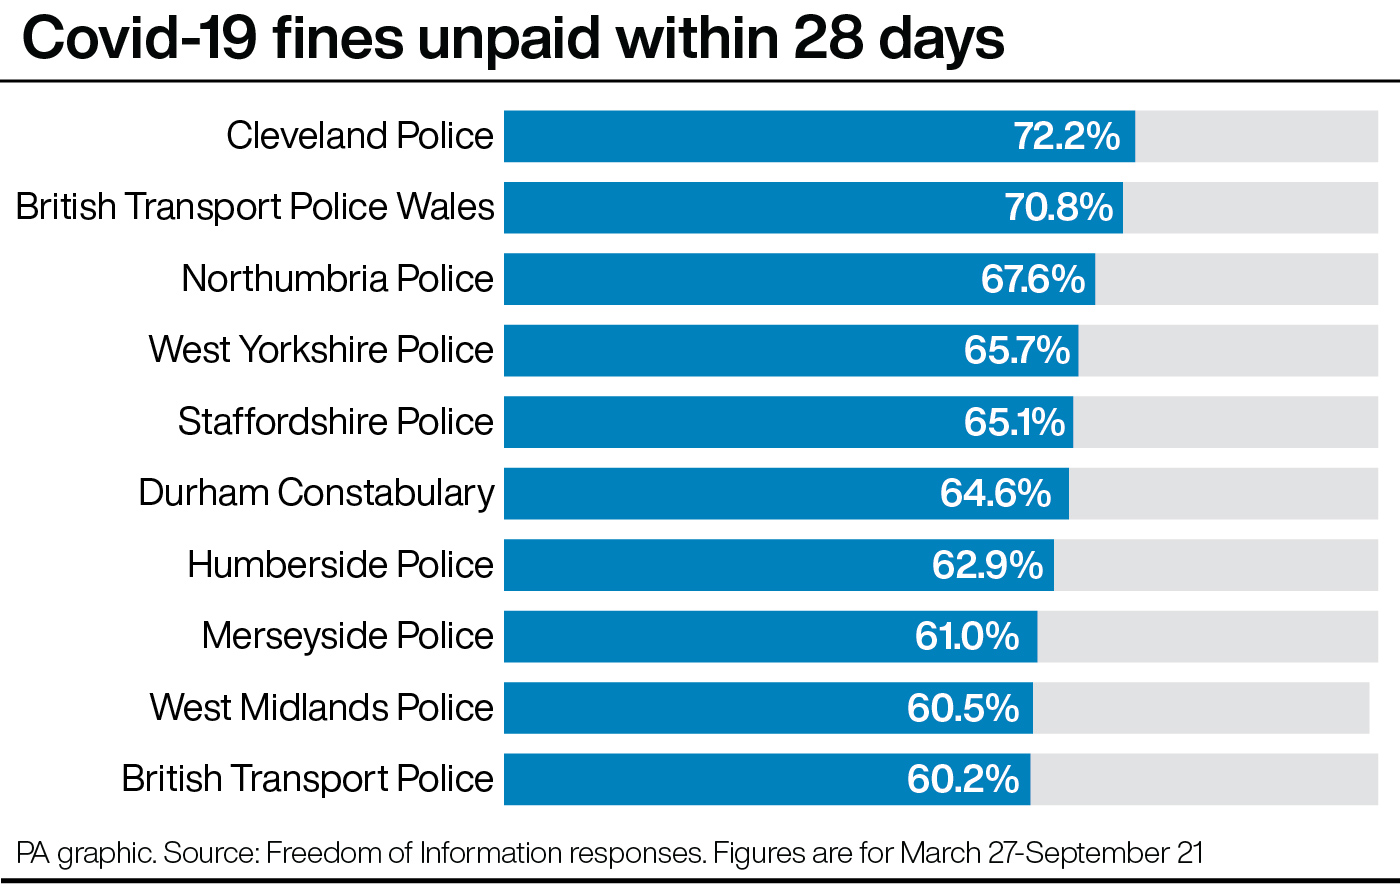 Covid-19 fines unpaid within 28 days